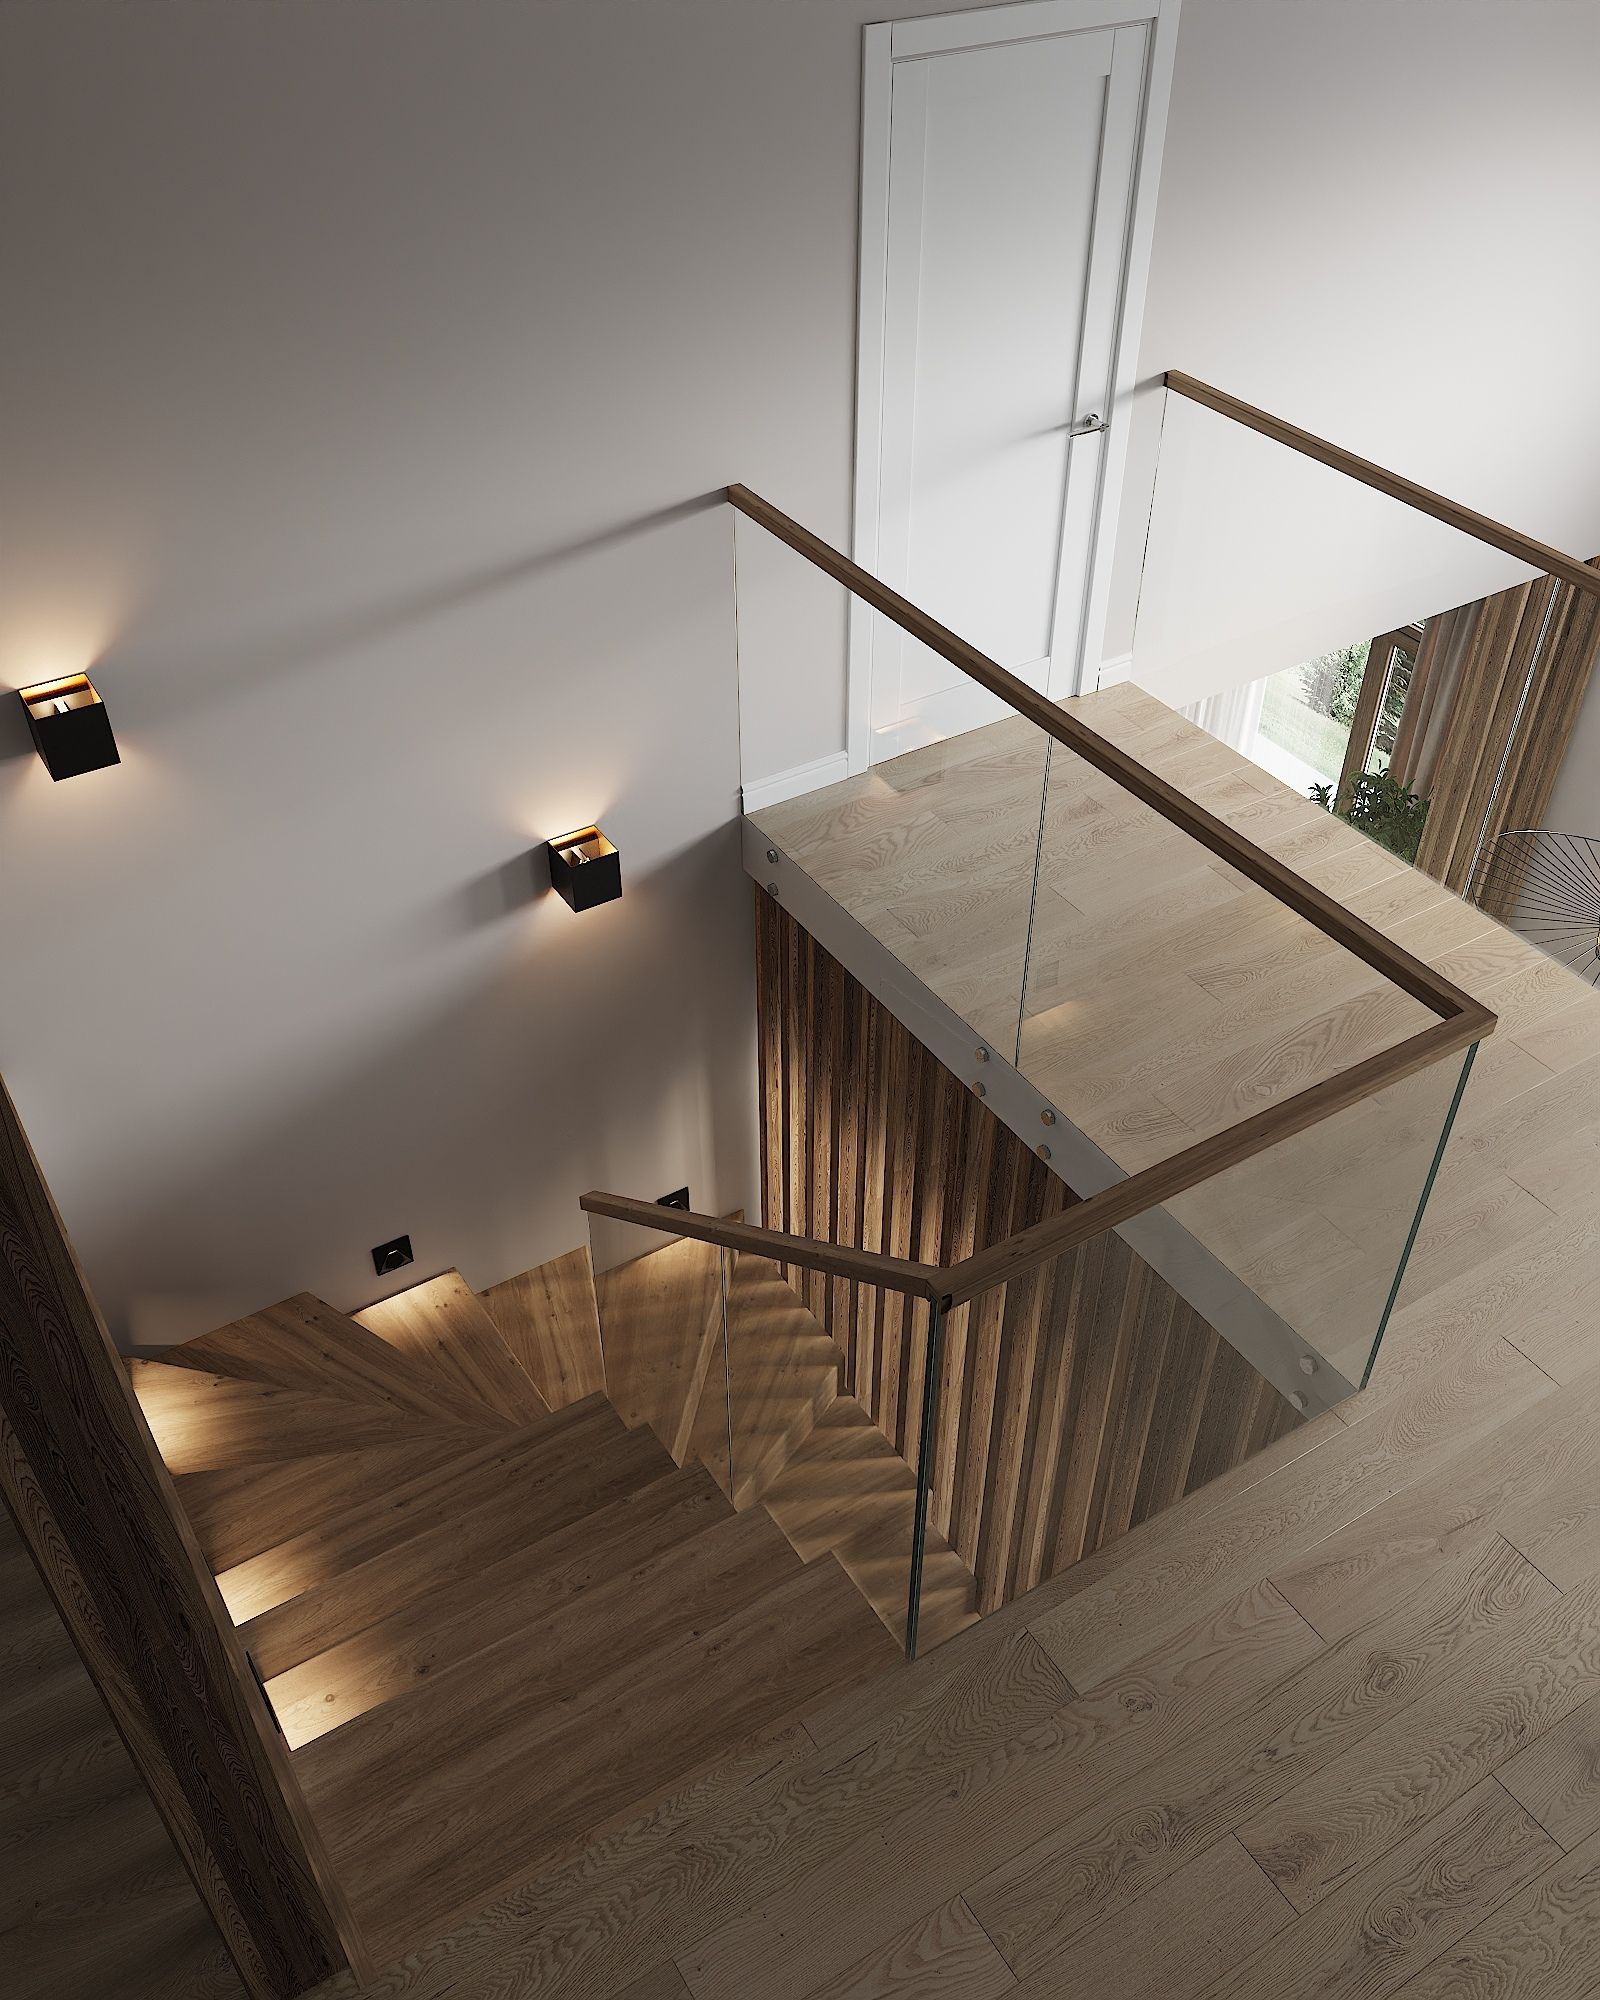 40 Trending Modern Staircase Design Ideas And Stair Handrails: Pin By Staircase On Staircase In 2020